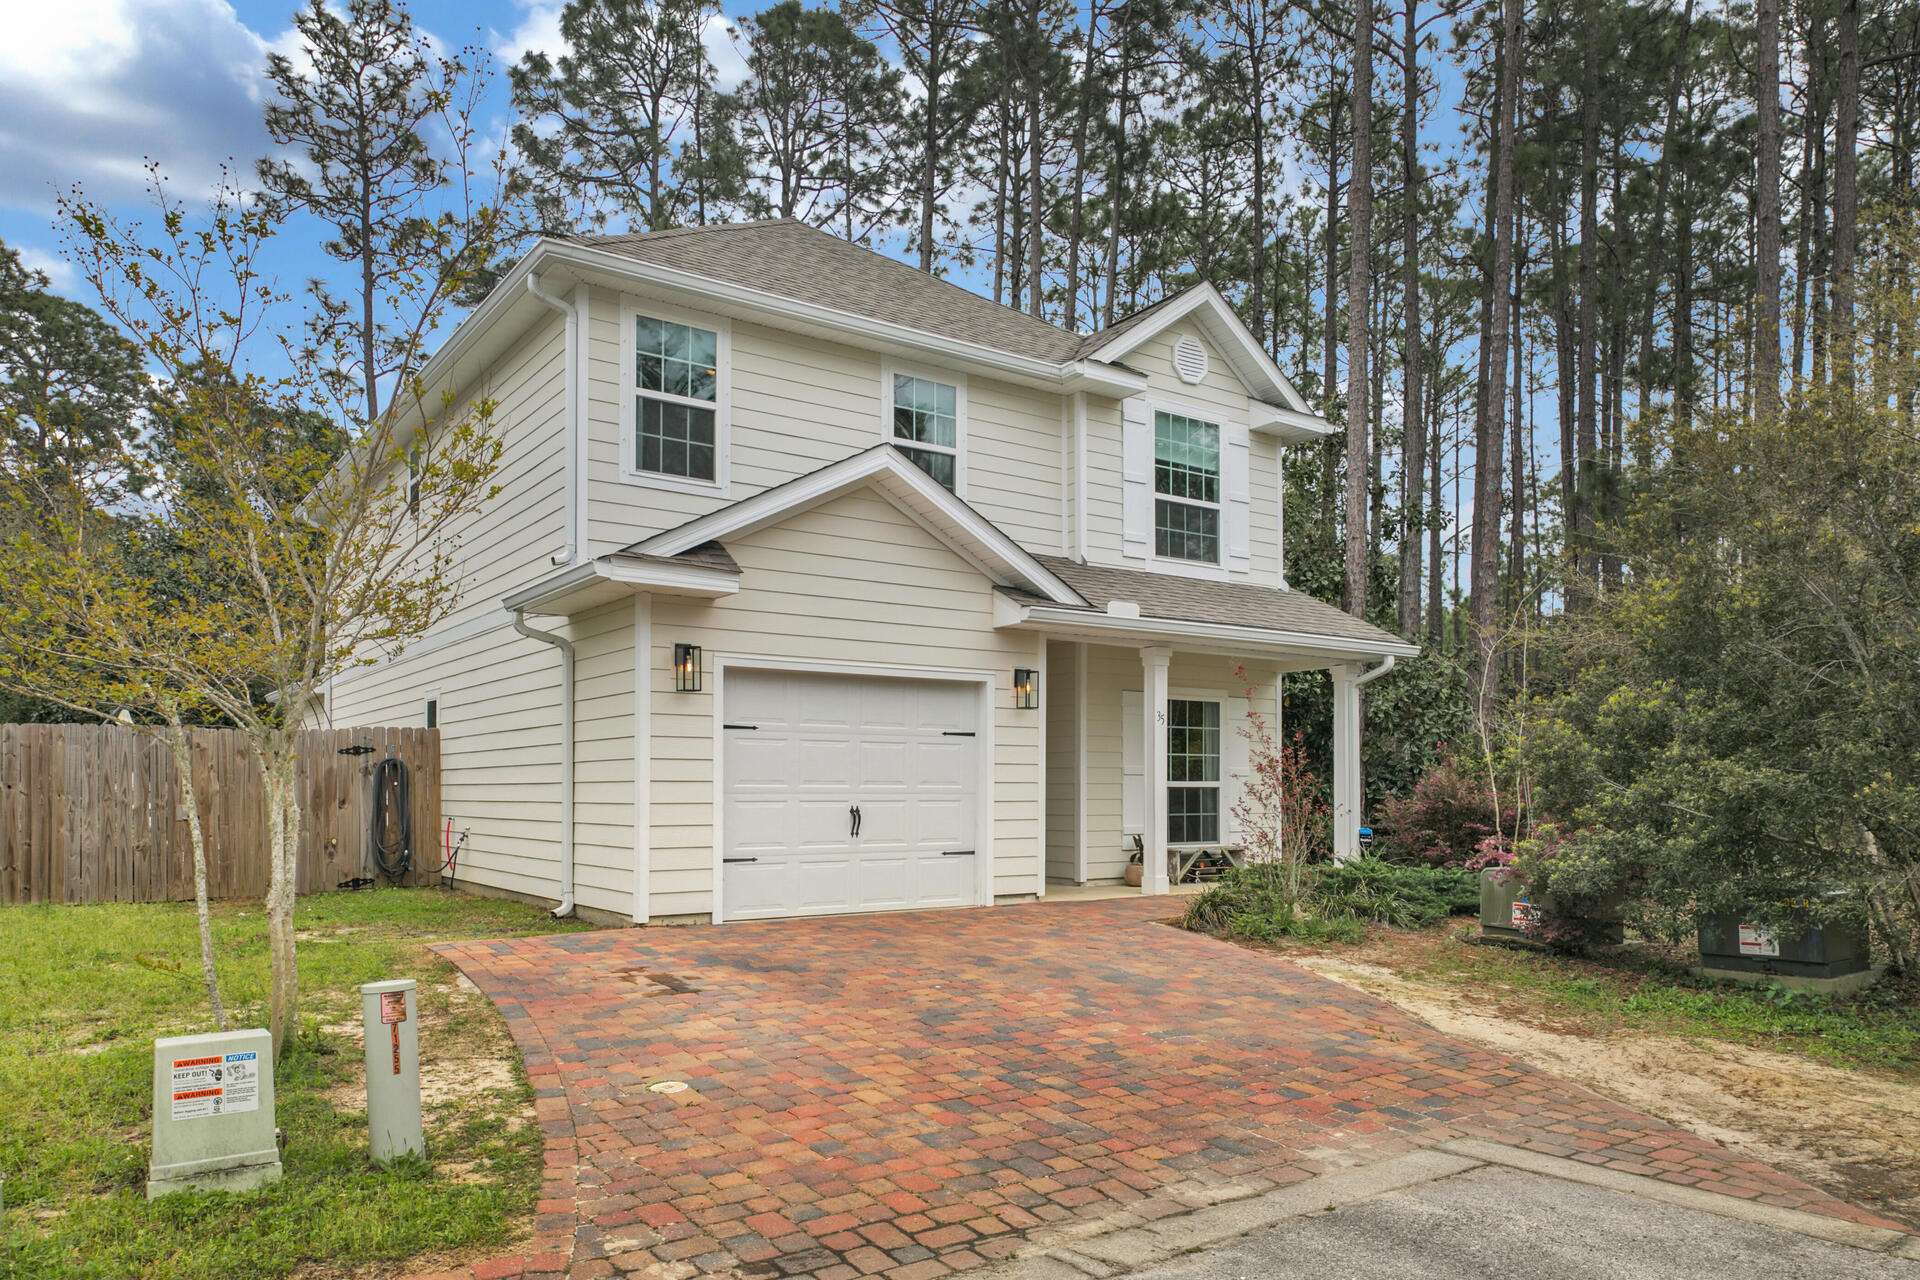 Photo of home for sale at 35 Tranquility, Santa Rosa Beach FL